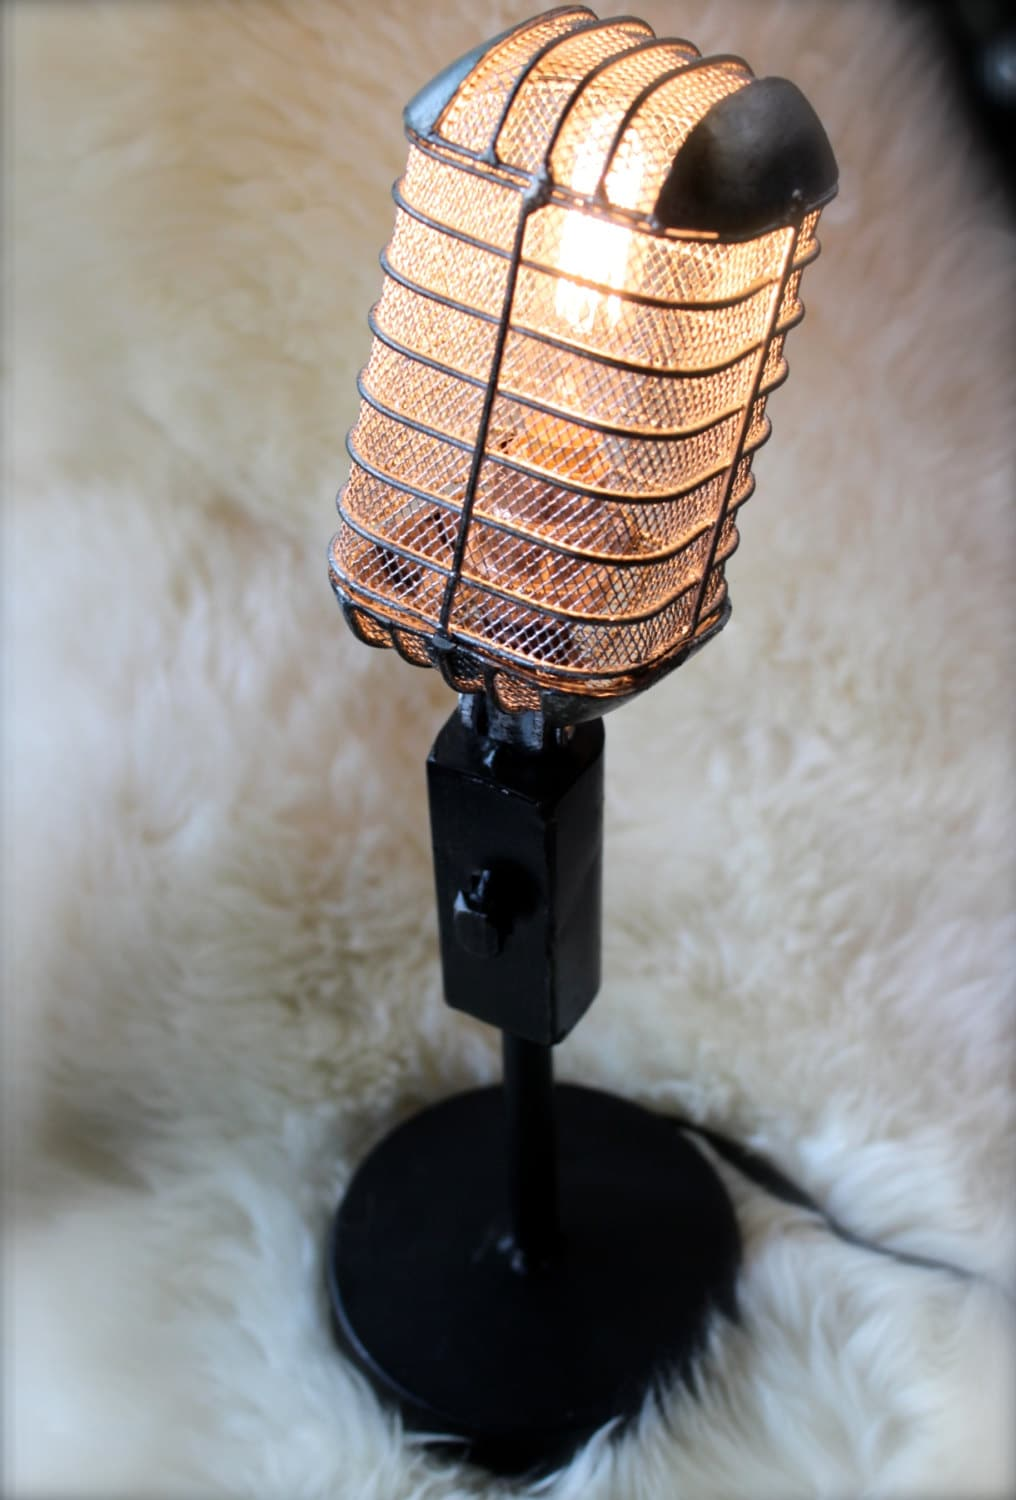 Vintage Microphone Light Fixture